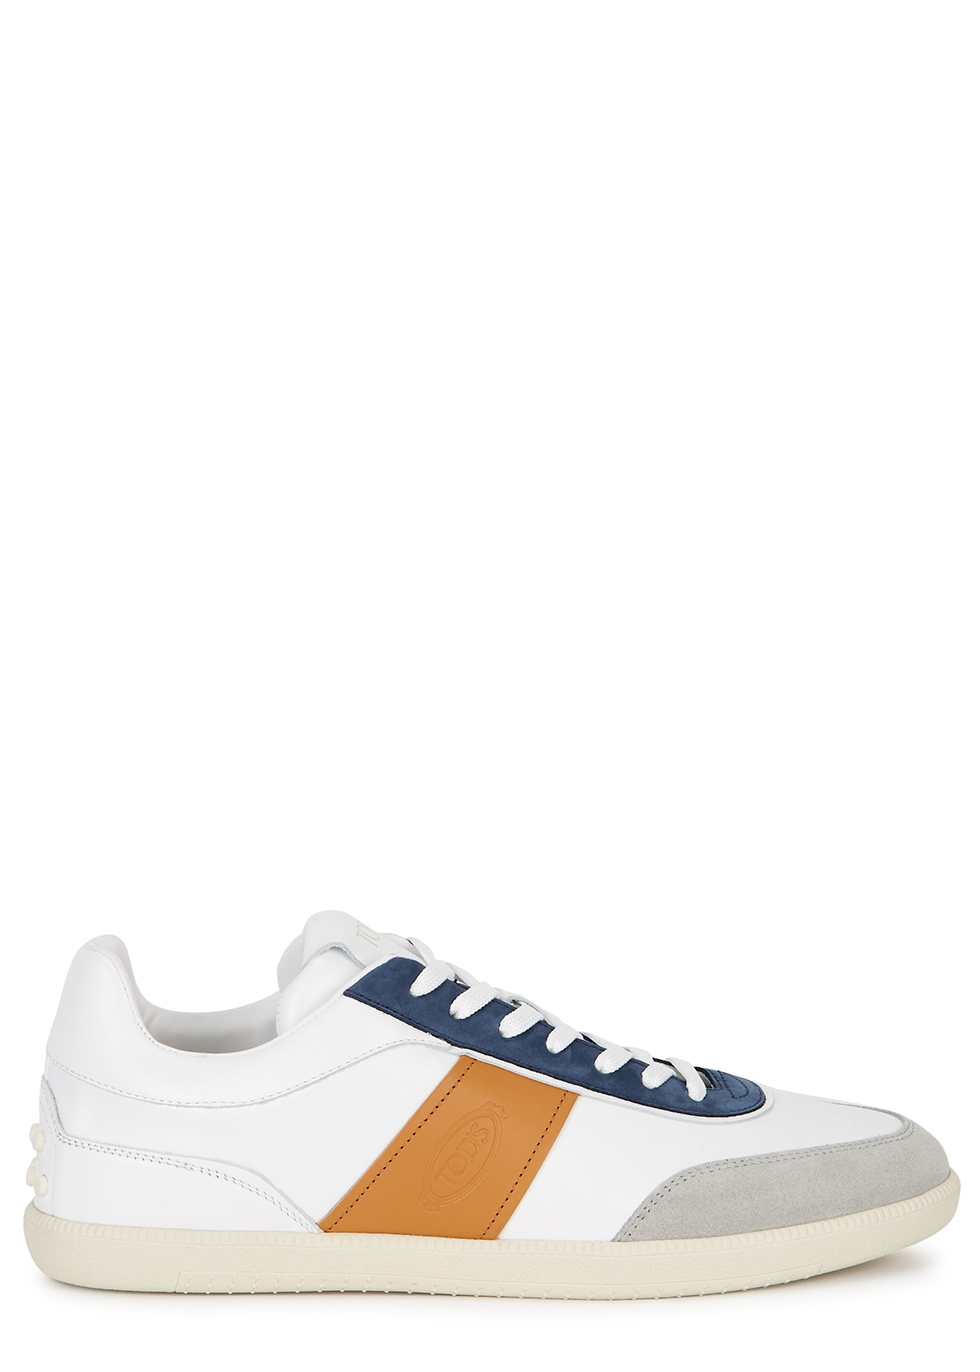 Cassetta white leather sneakers